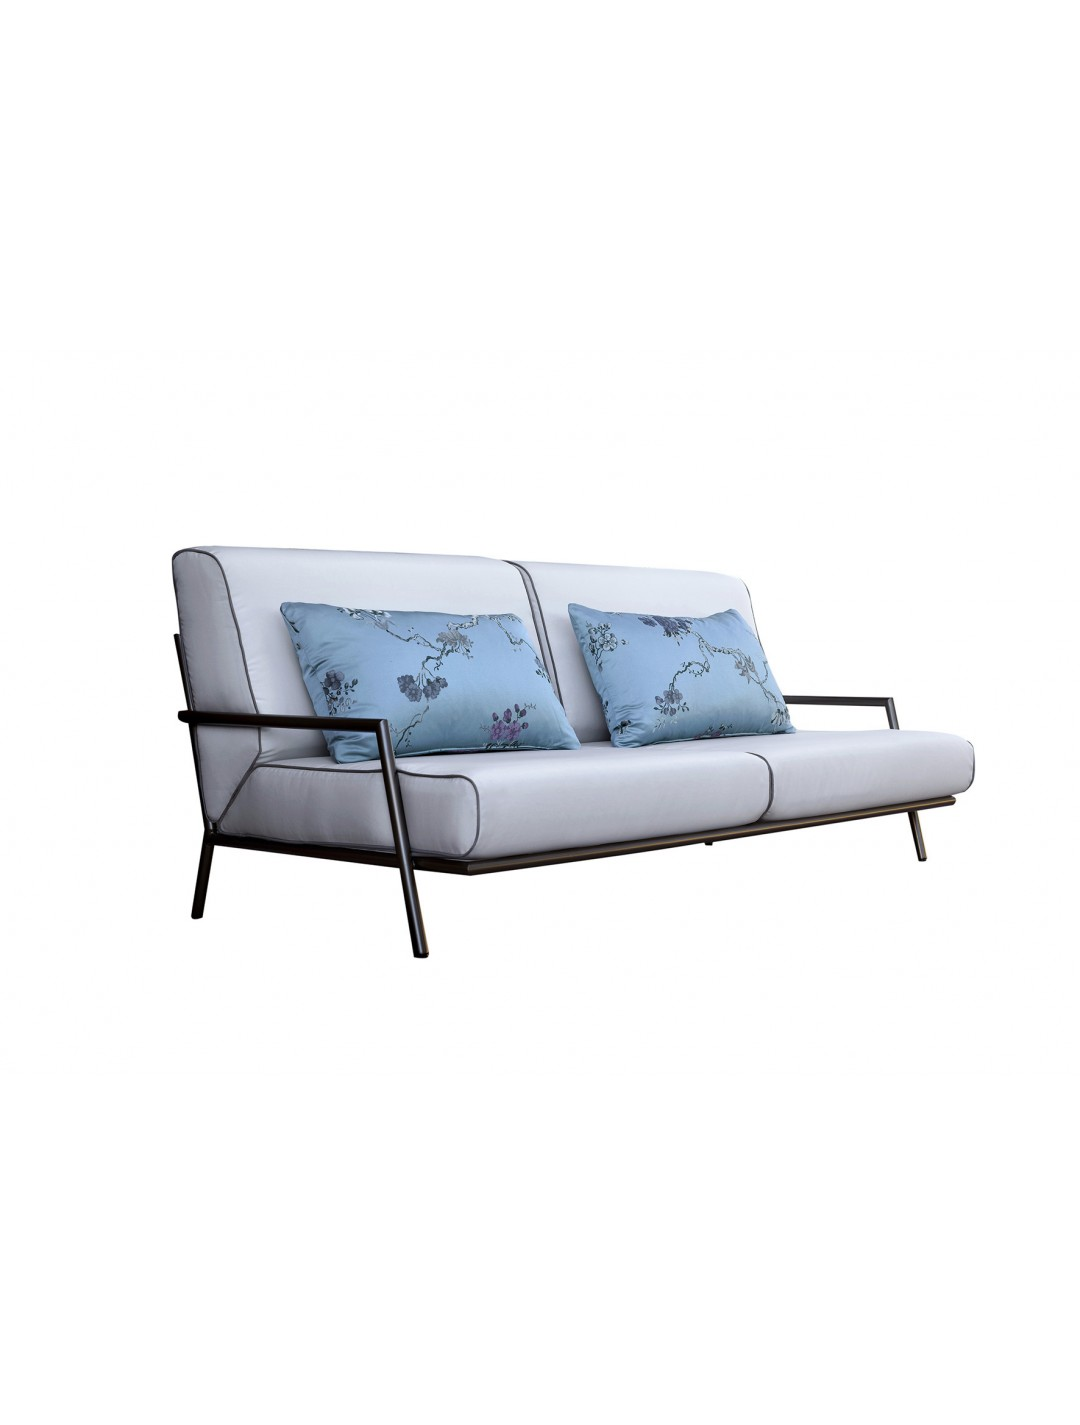 LUCIO 2-SEATER IRON SOFA, FINISH: BRONCE IN&OUT IRON FINISH, WITH TWO 80*50 CM CUSHIONS, C.O.M.